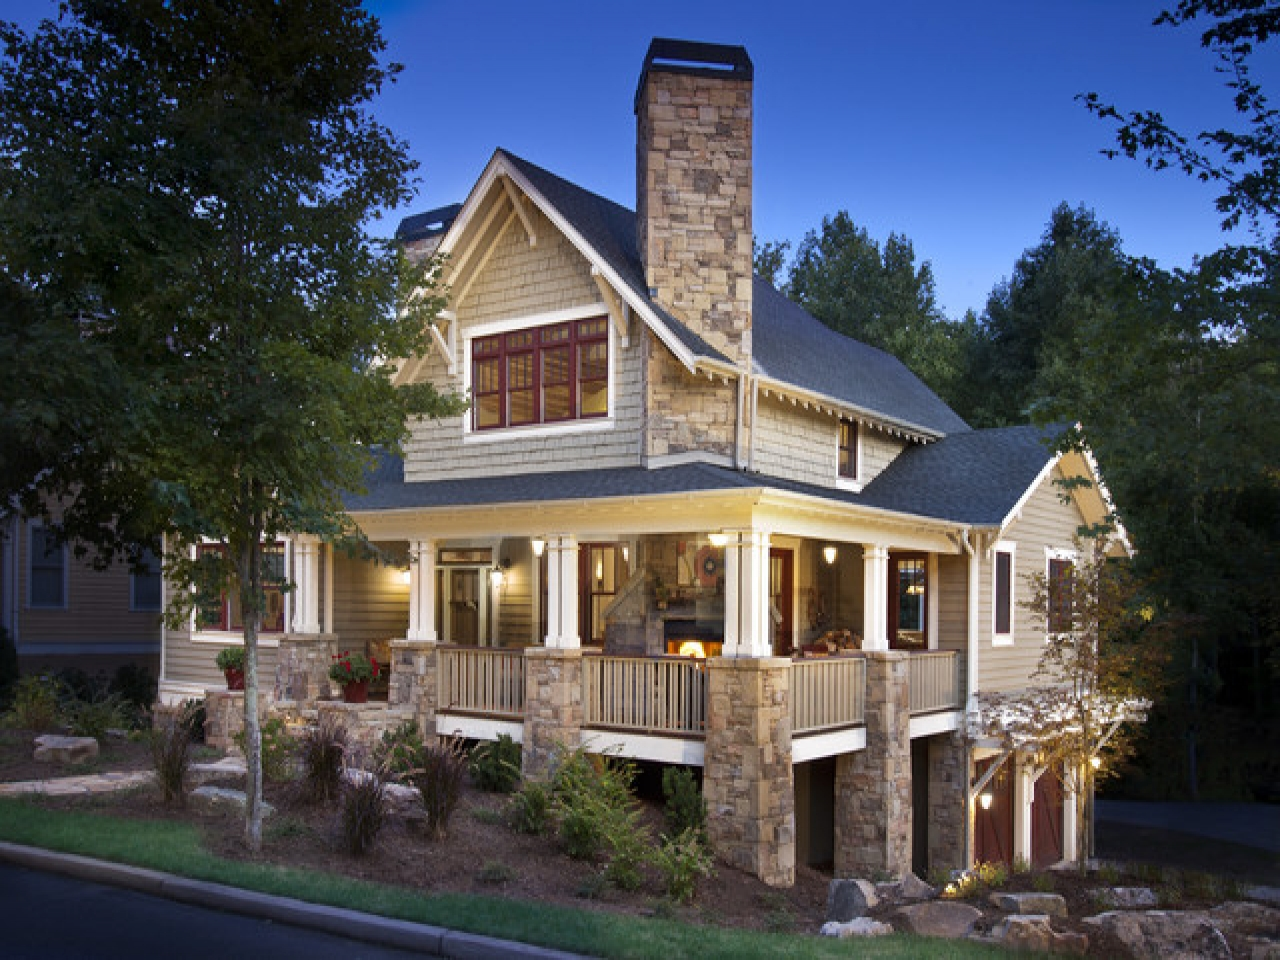 Craftsman Style Architecture Craftsman Home With Wrap